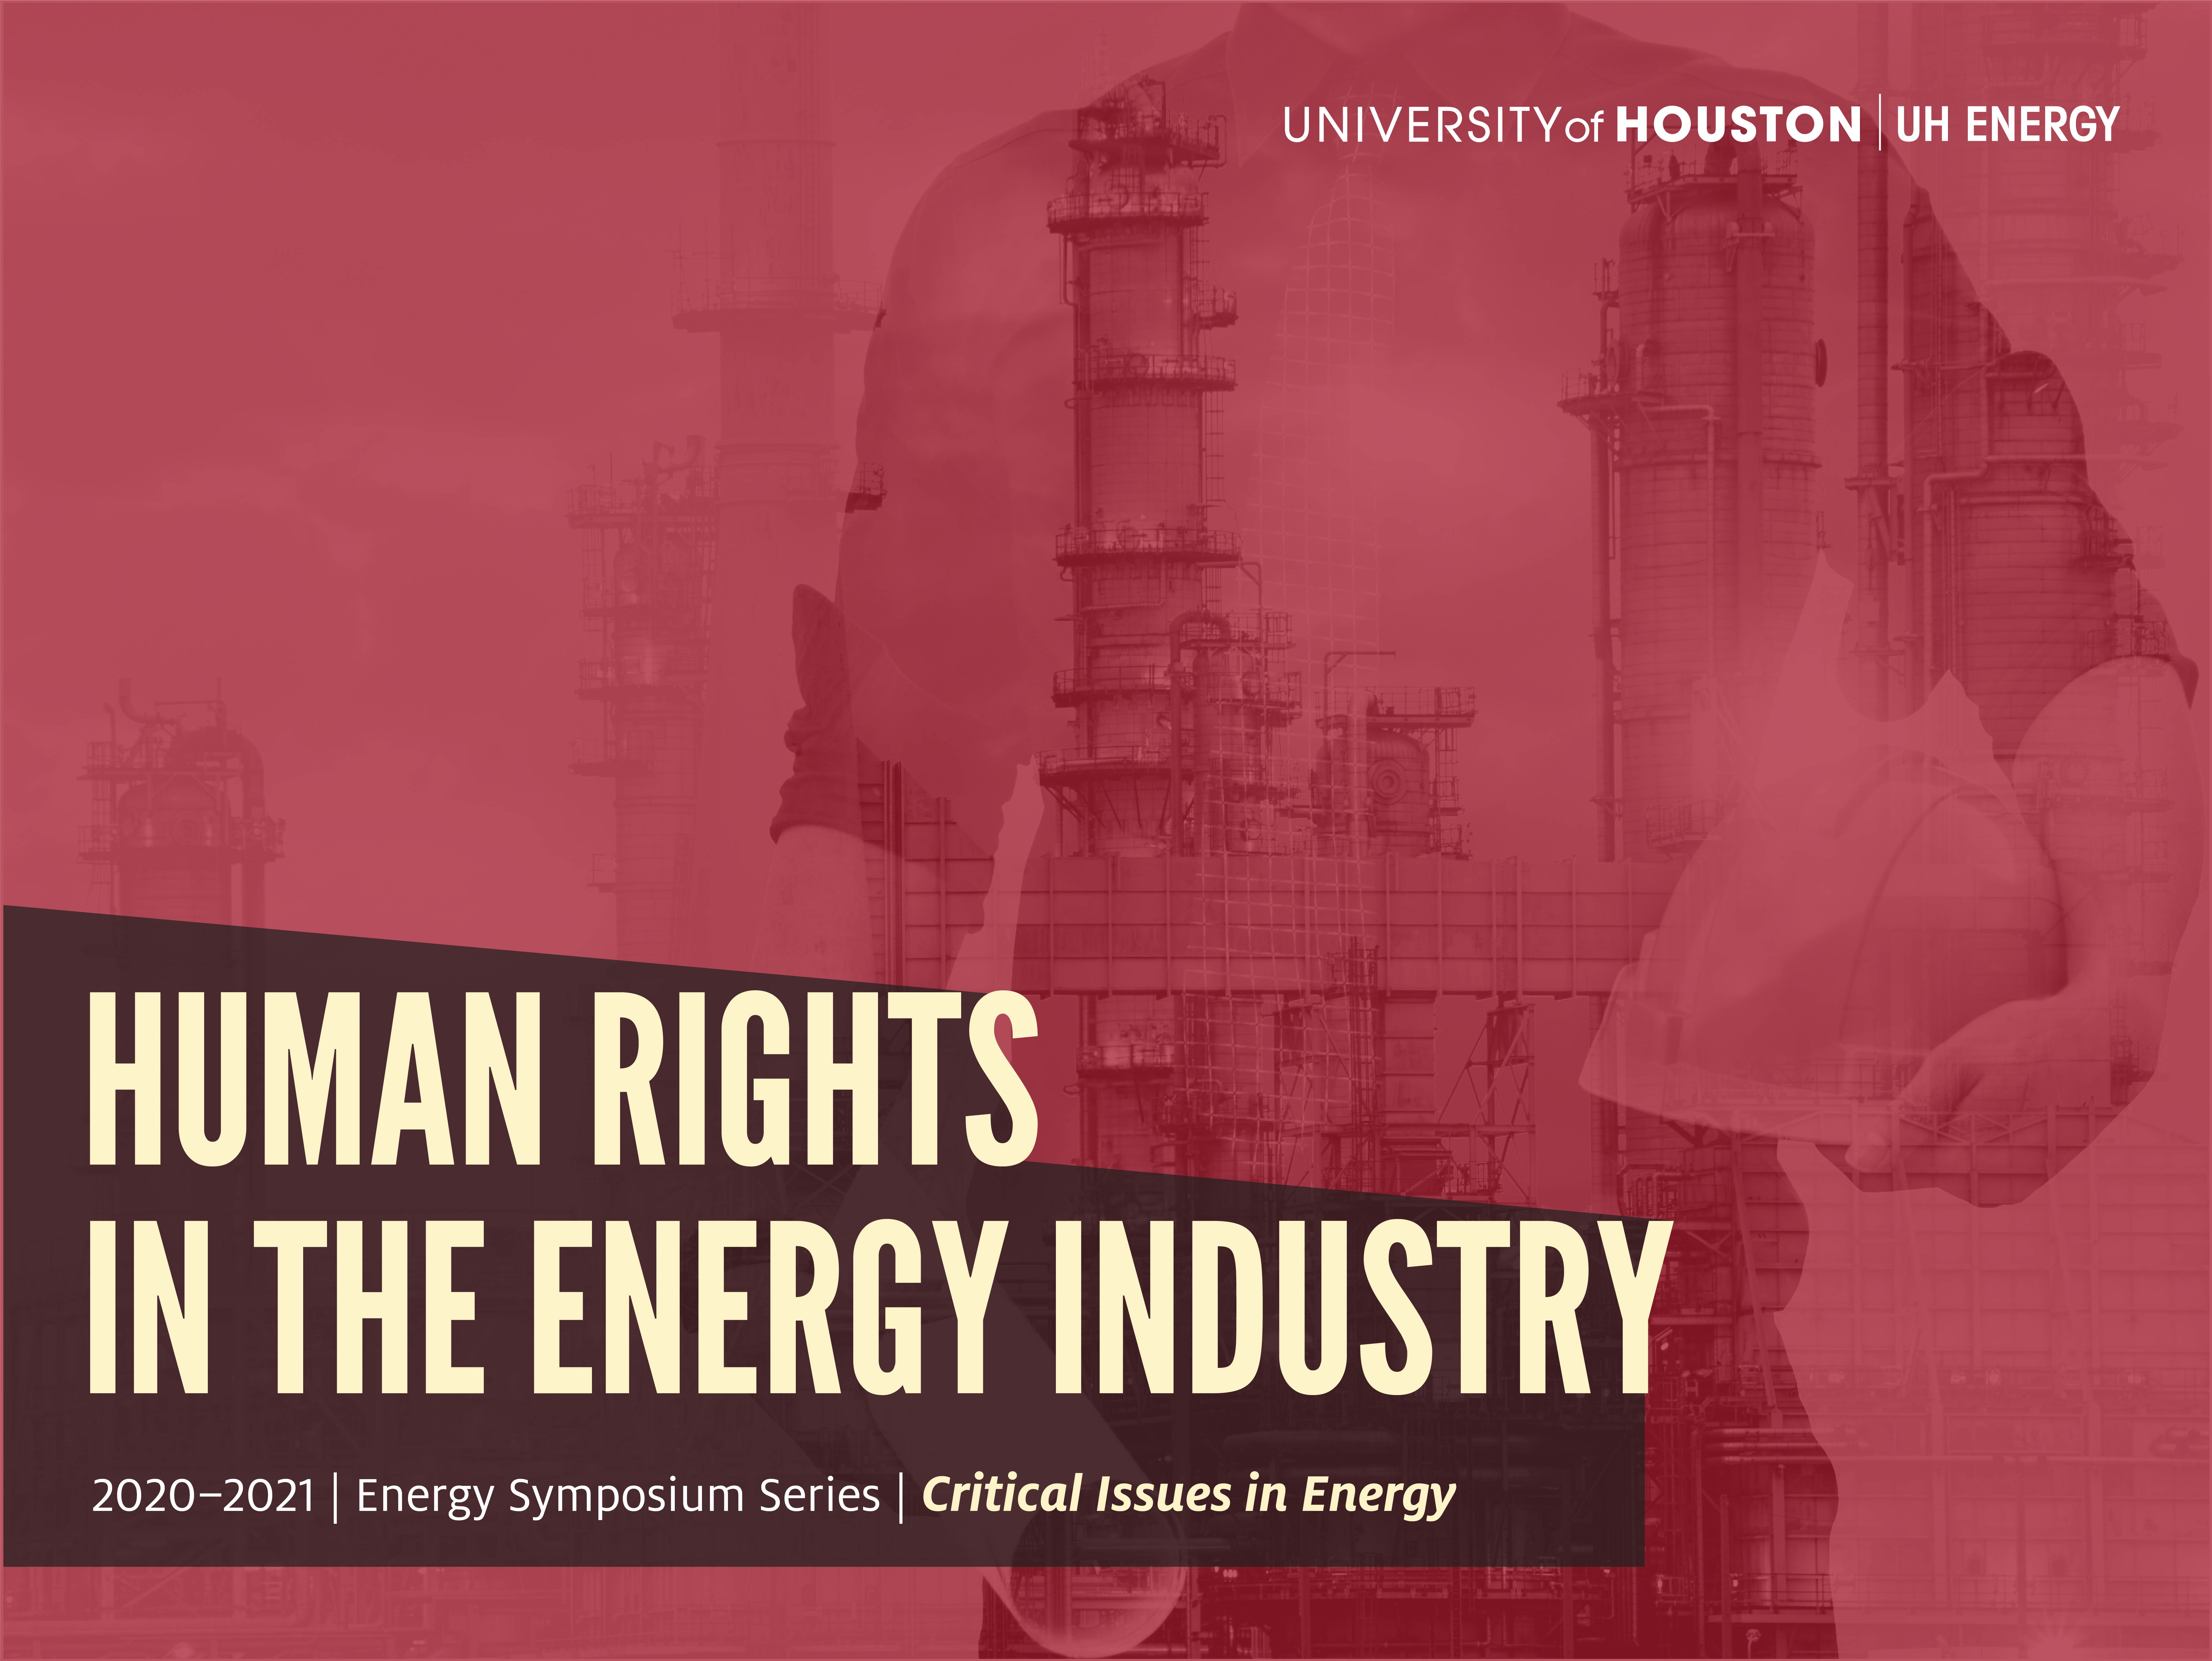 UH Energy Symposium Series: Human Rights in the Energy Industry Image